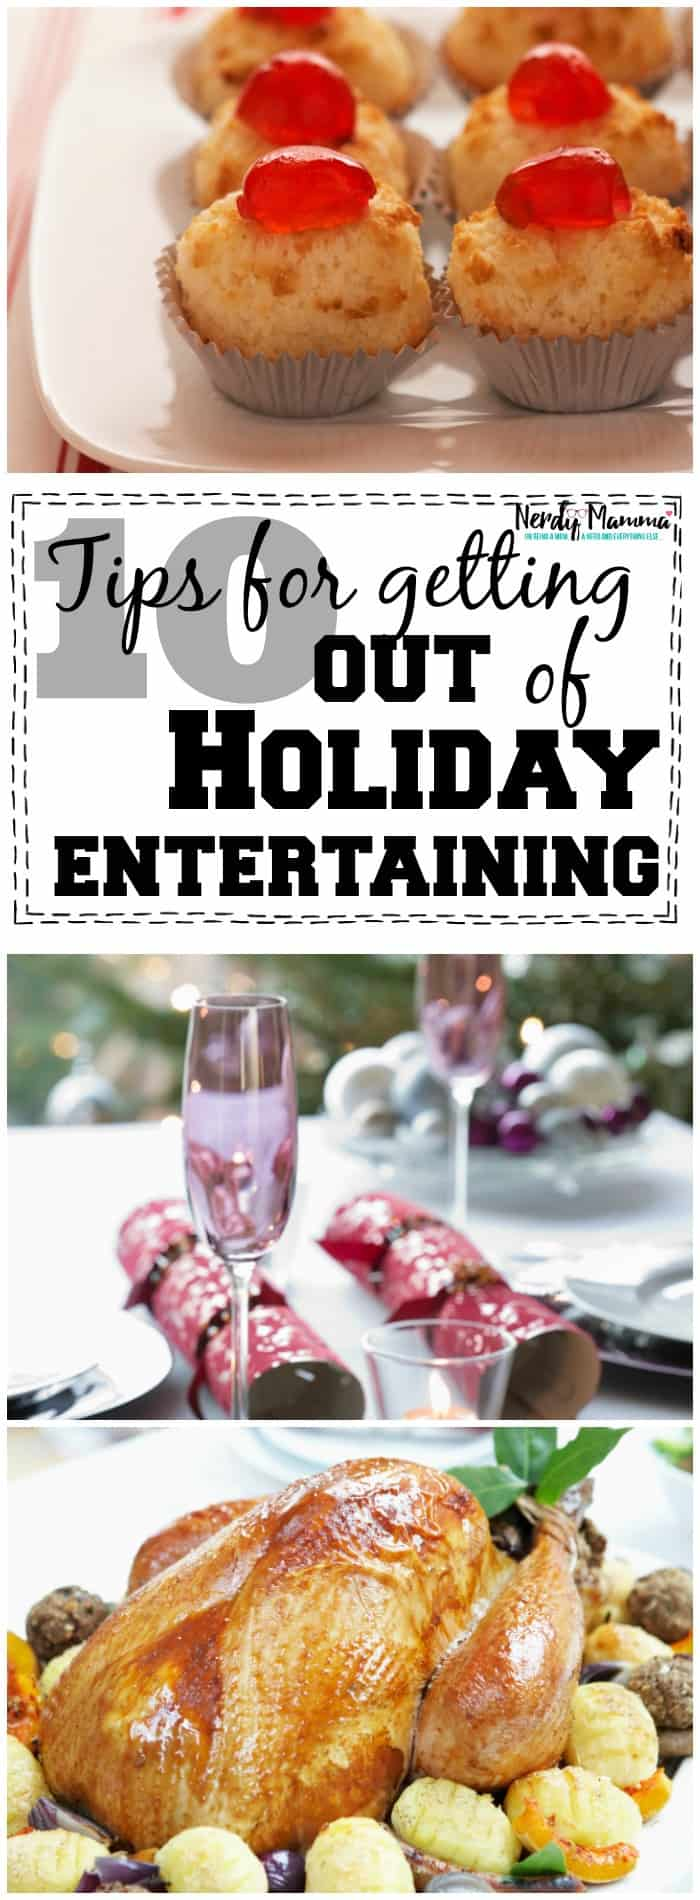 10 tips for getting out of holiday entertaining